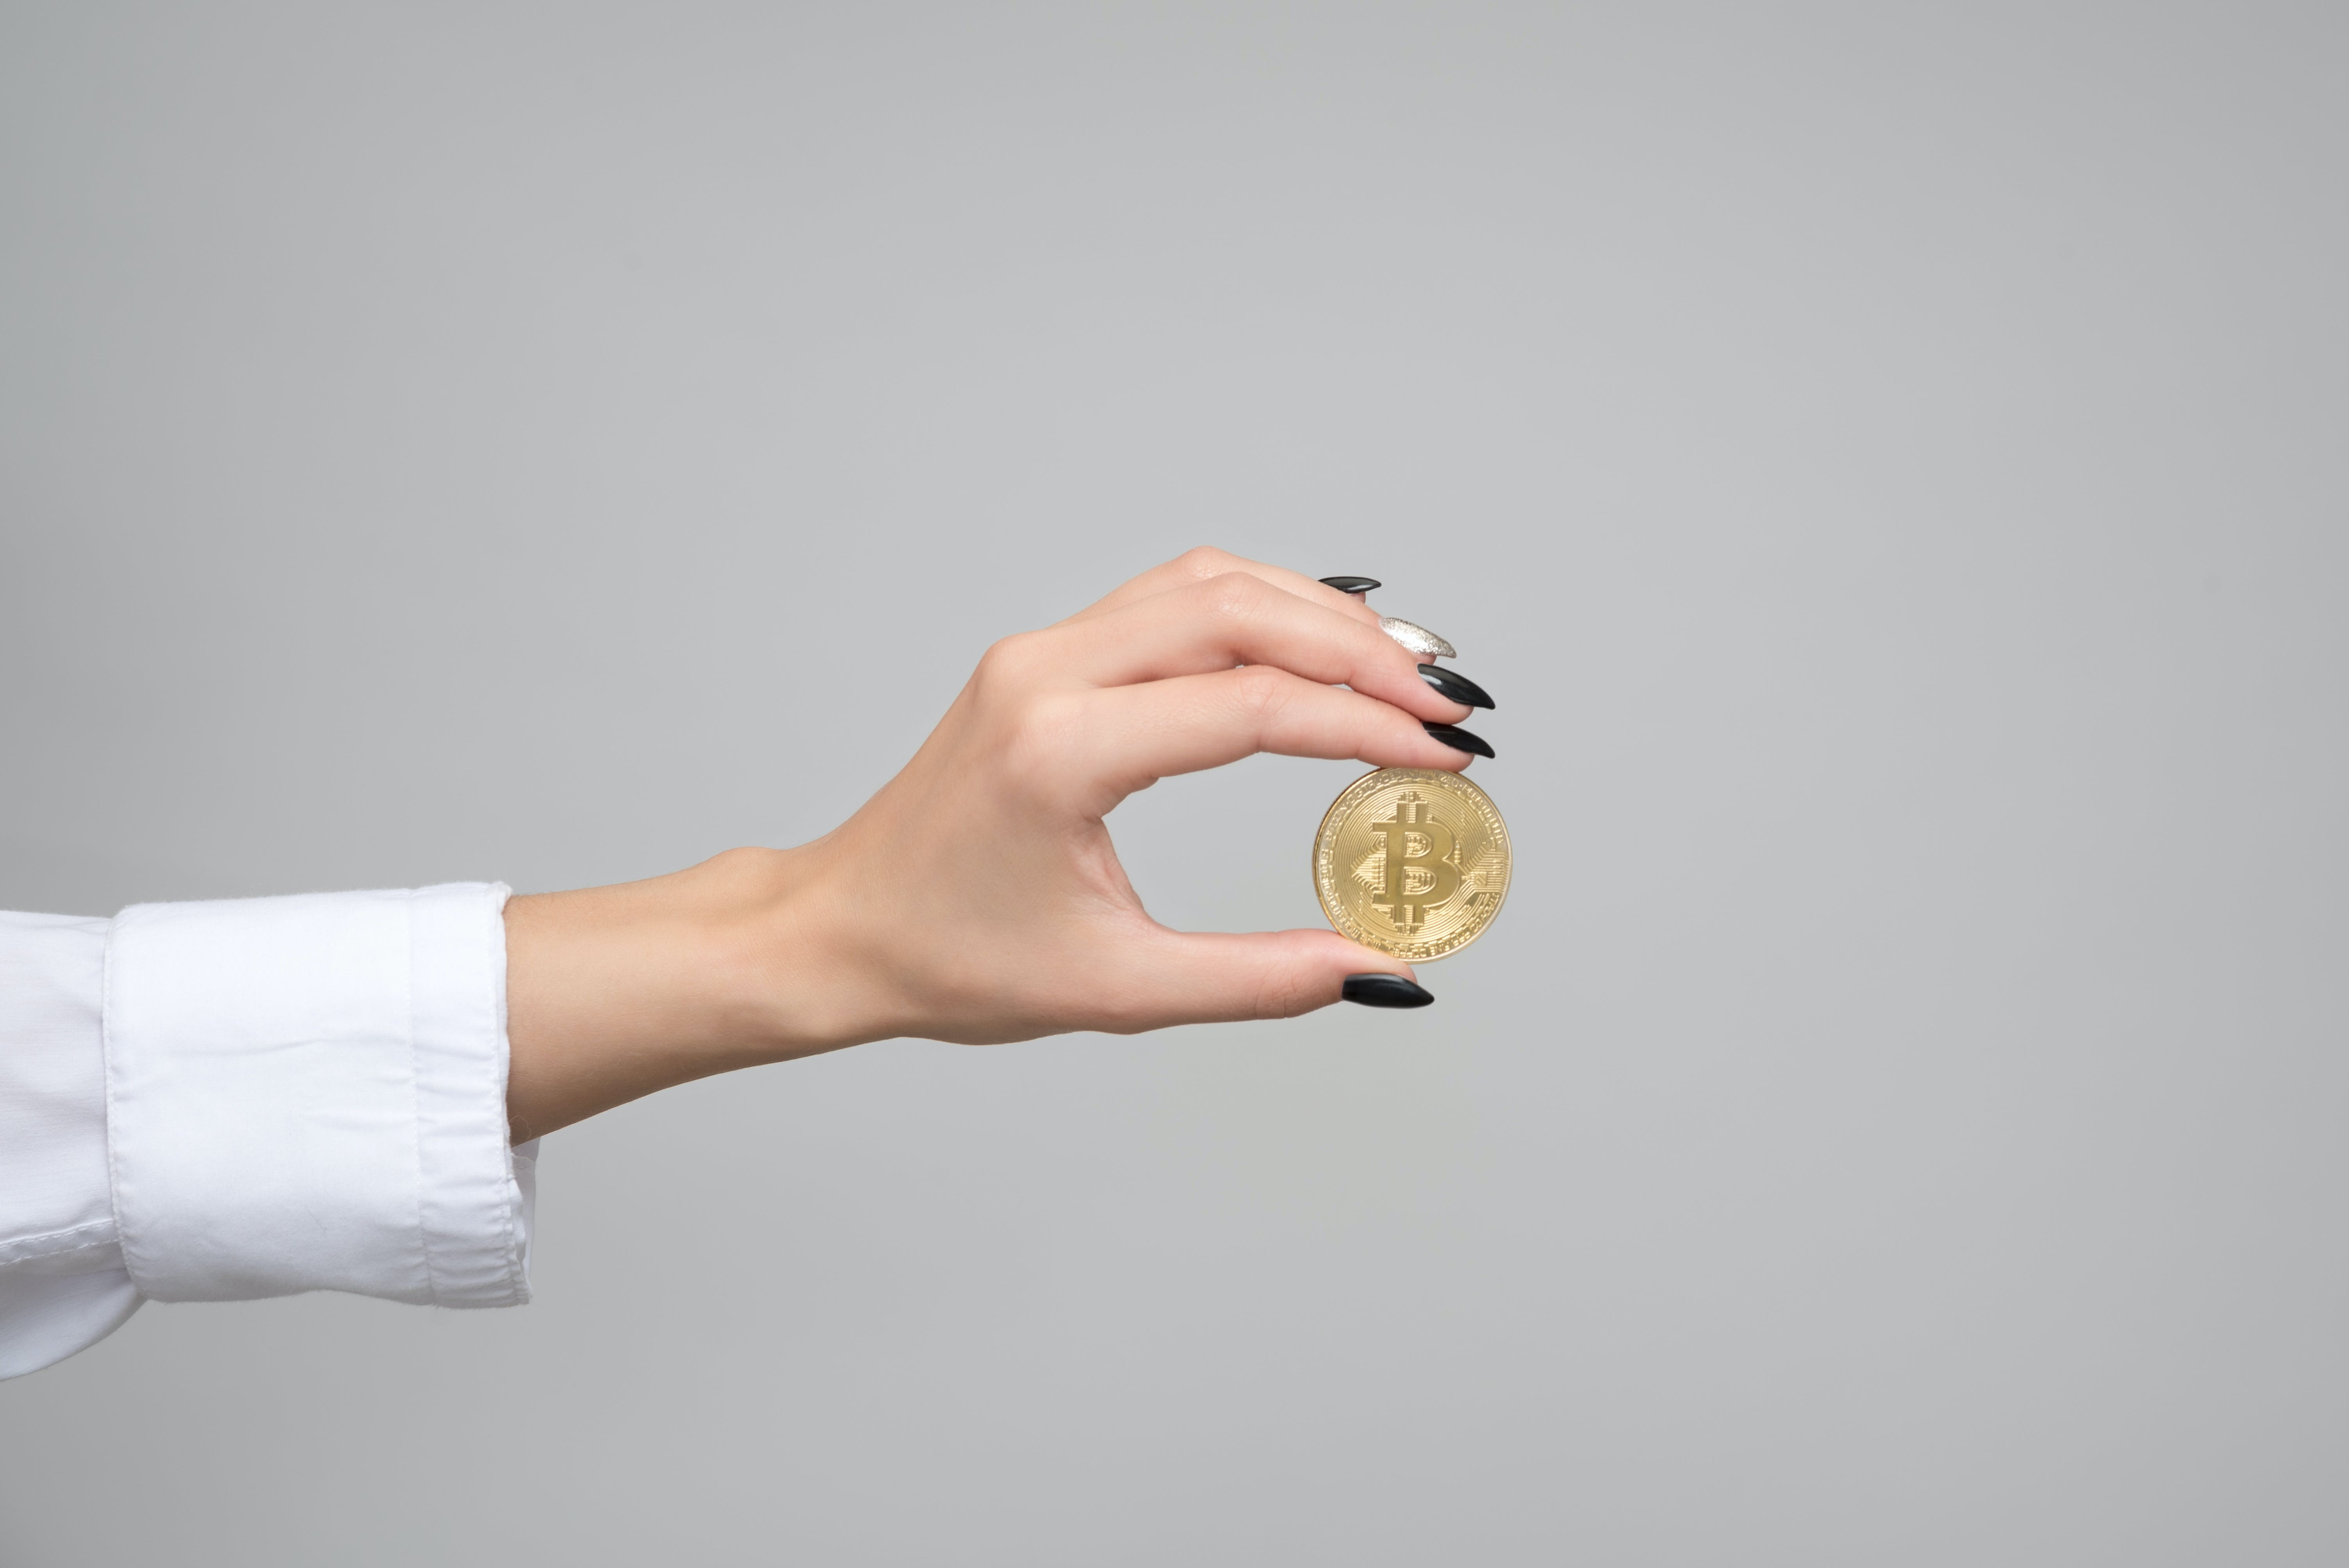 Woman Holding a Bitcoin